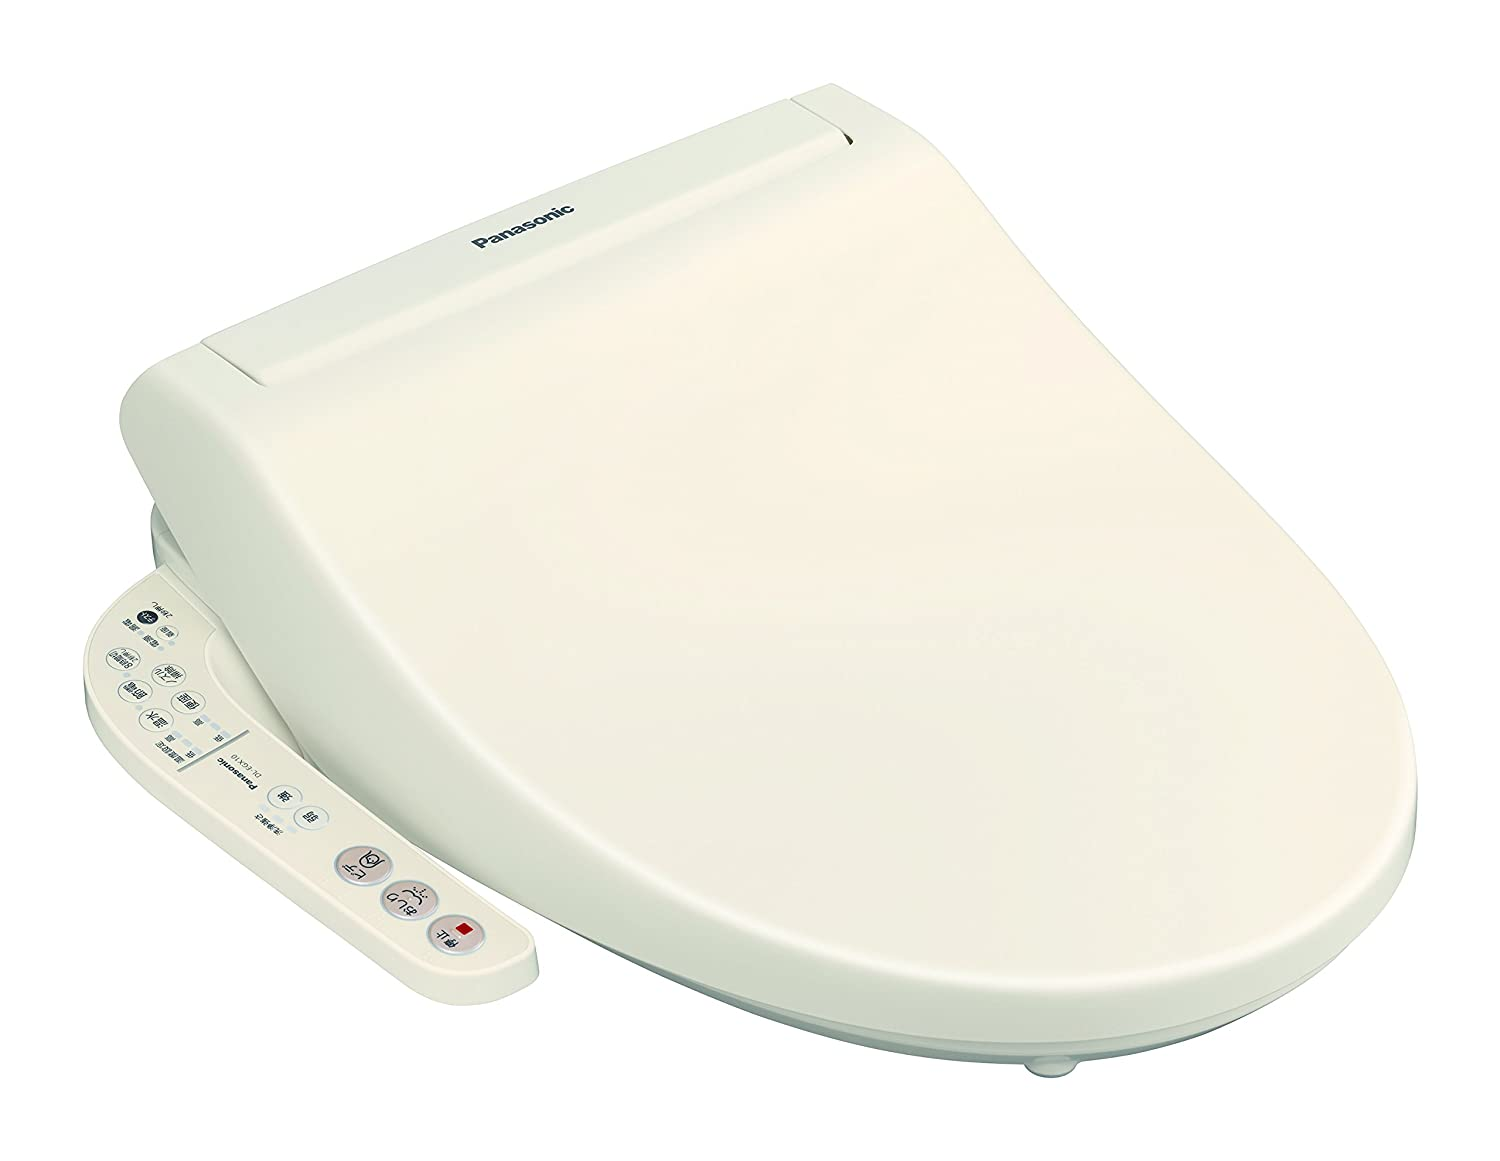 Panasonic warm water cleaning toilet seat Beauty De Toilette pastel ...